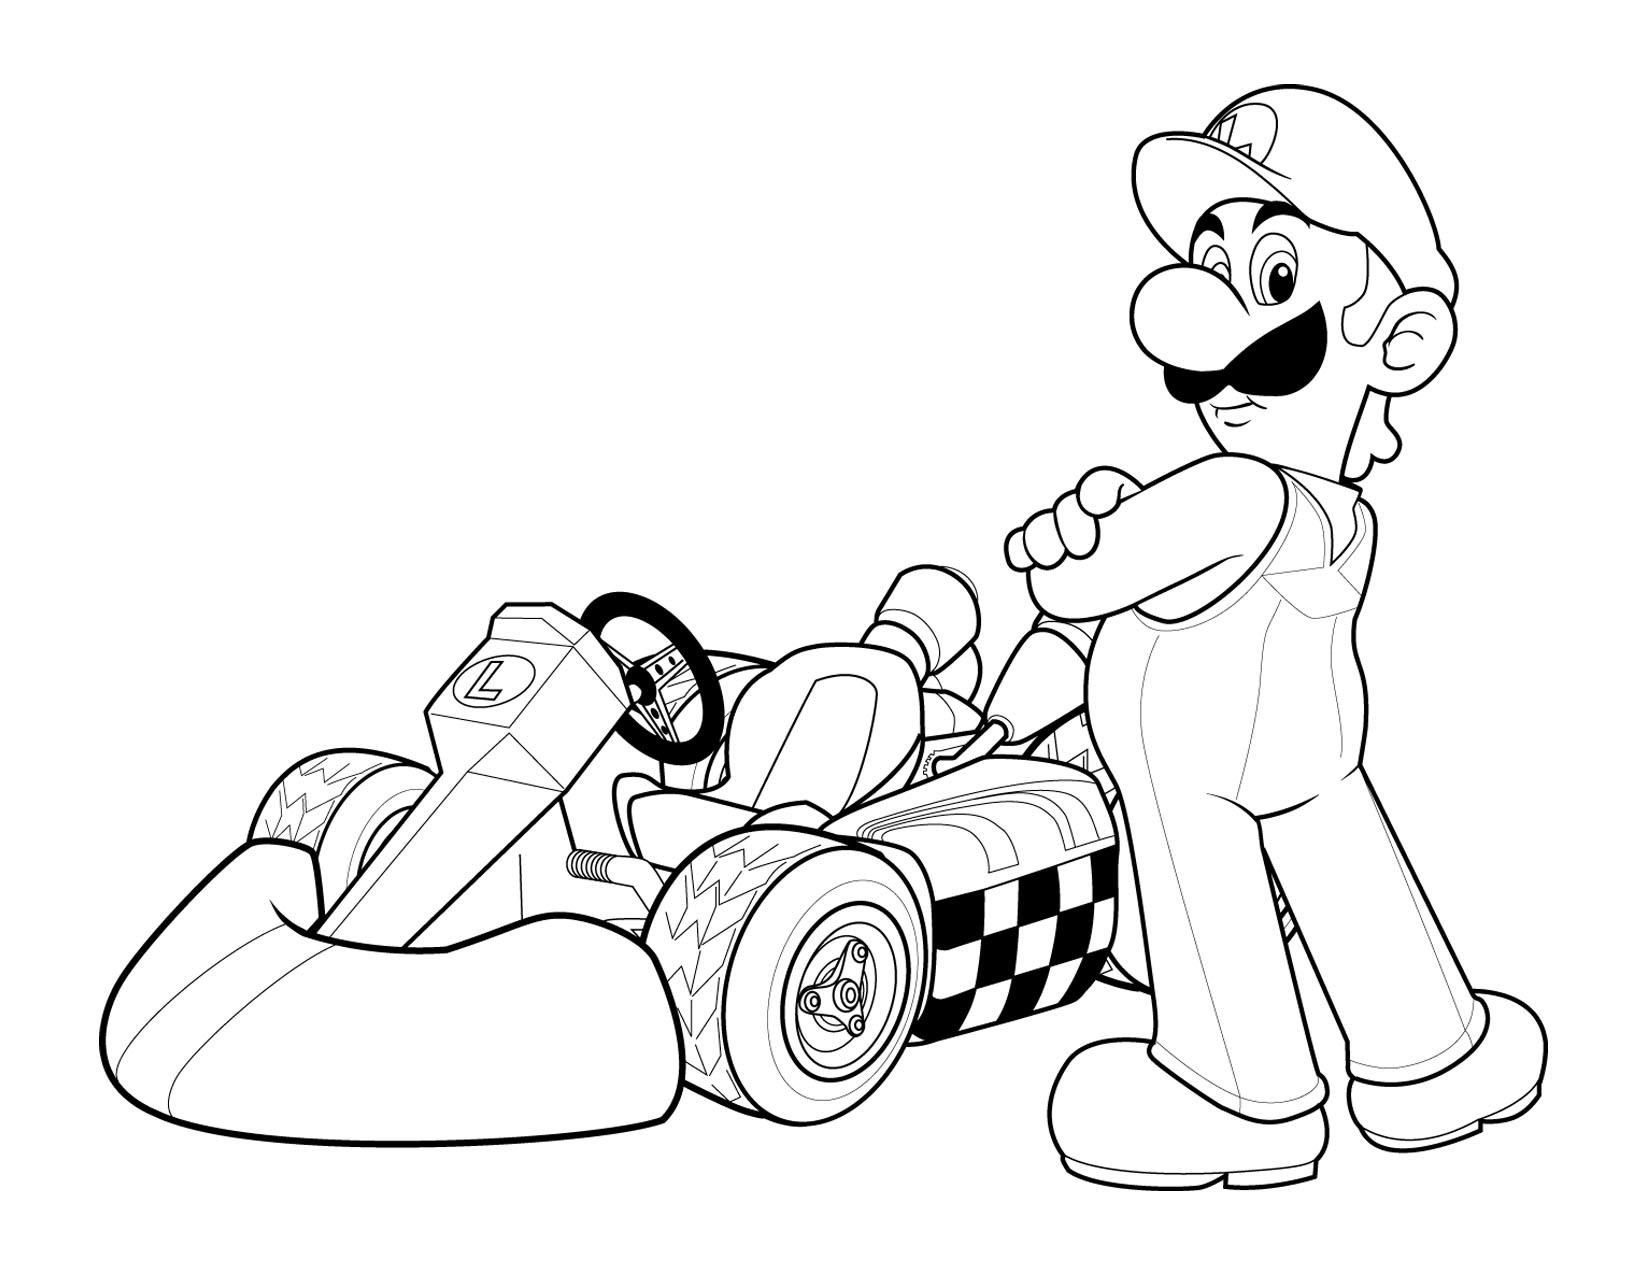 printable pictures of mario characters super mario coloring pages free printable coloring pages pictures characters printable mario of